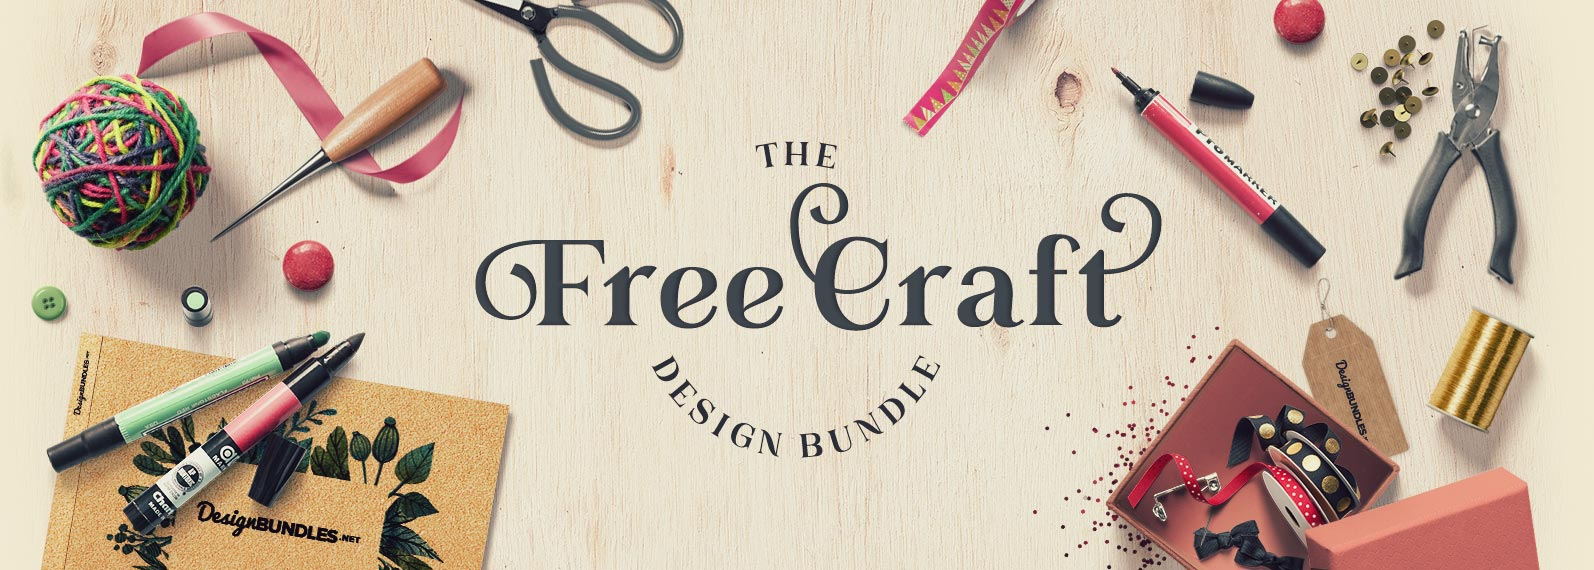 Free Craft Bundle Cover